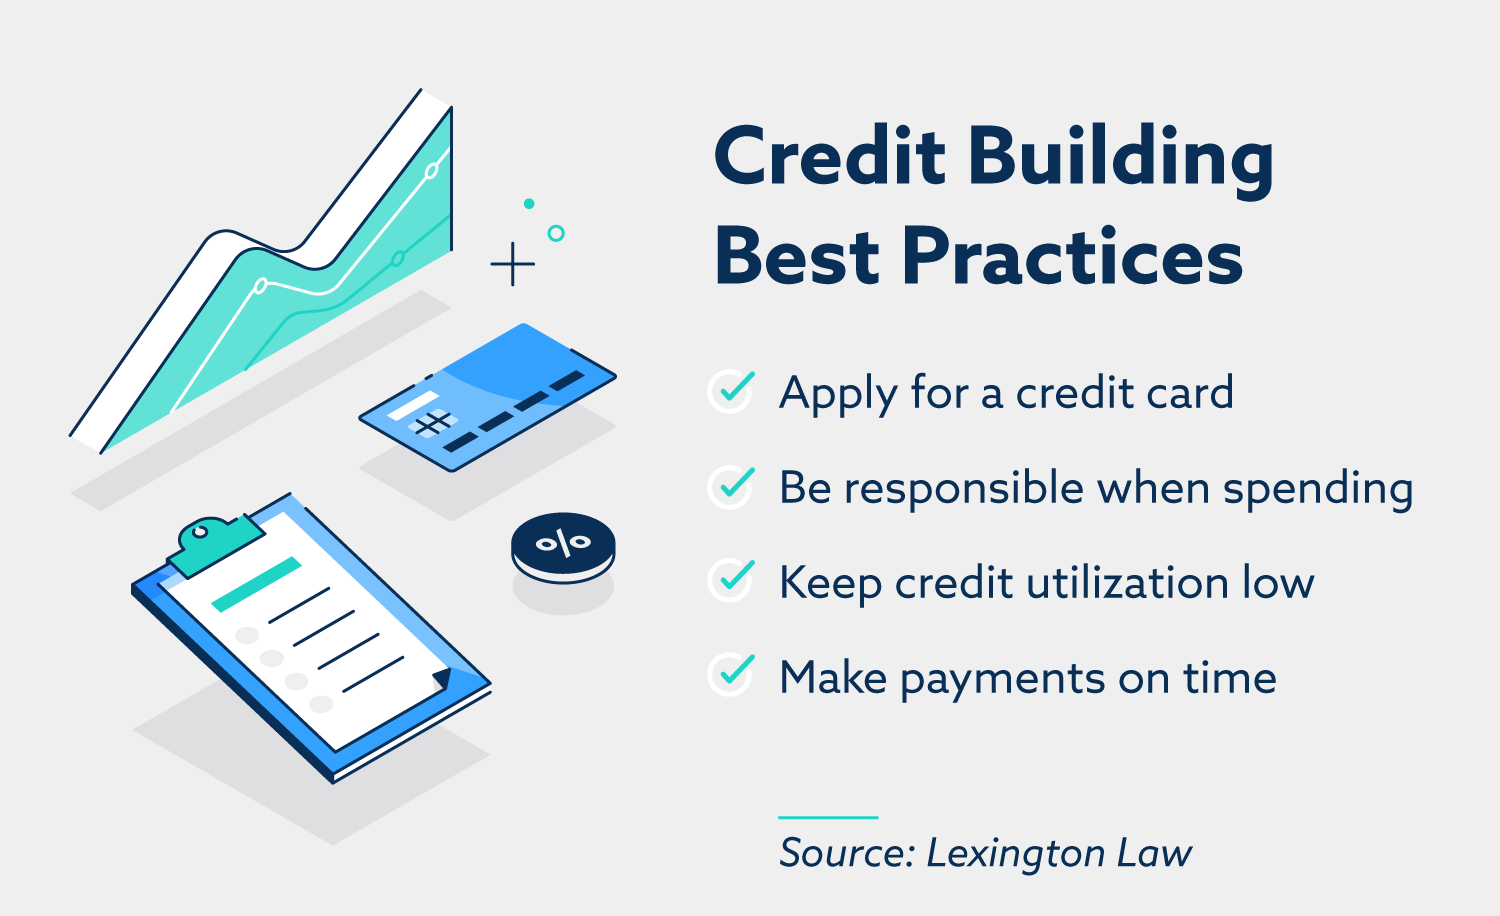 Credit-building best practices: apply for a credit card, be responsible when spending, keep credit utilization low, make payments on time.